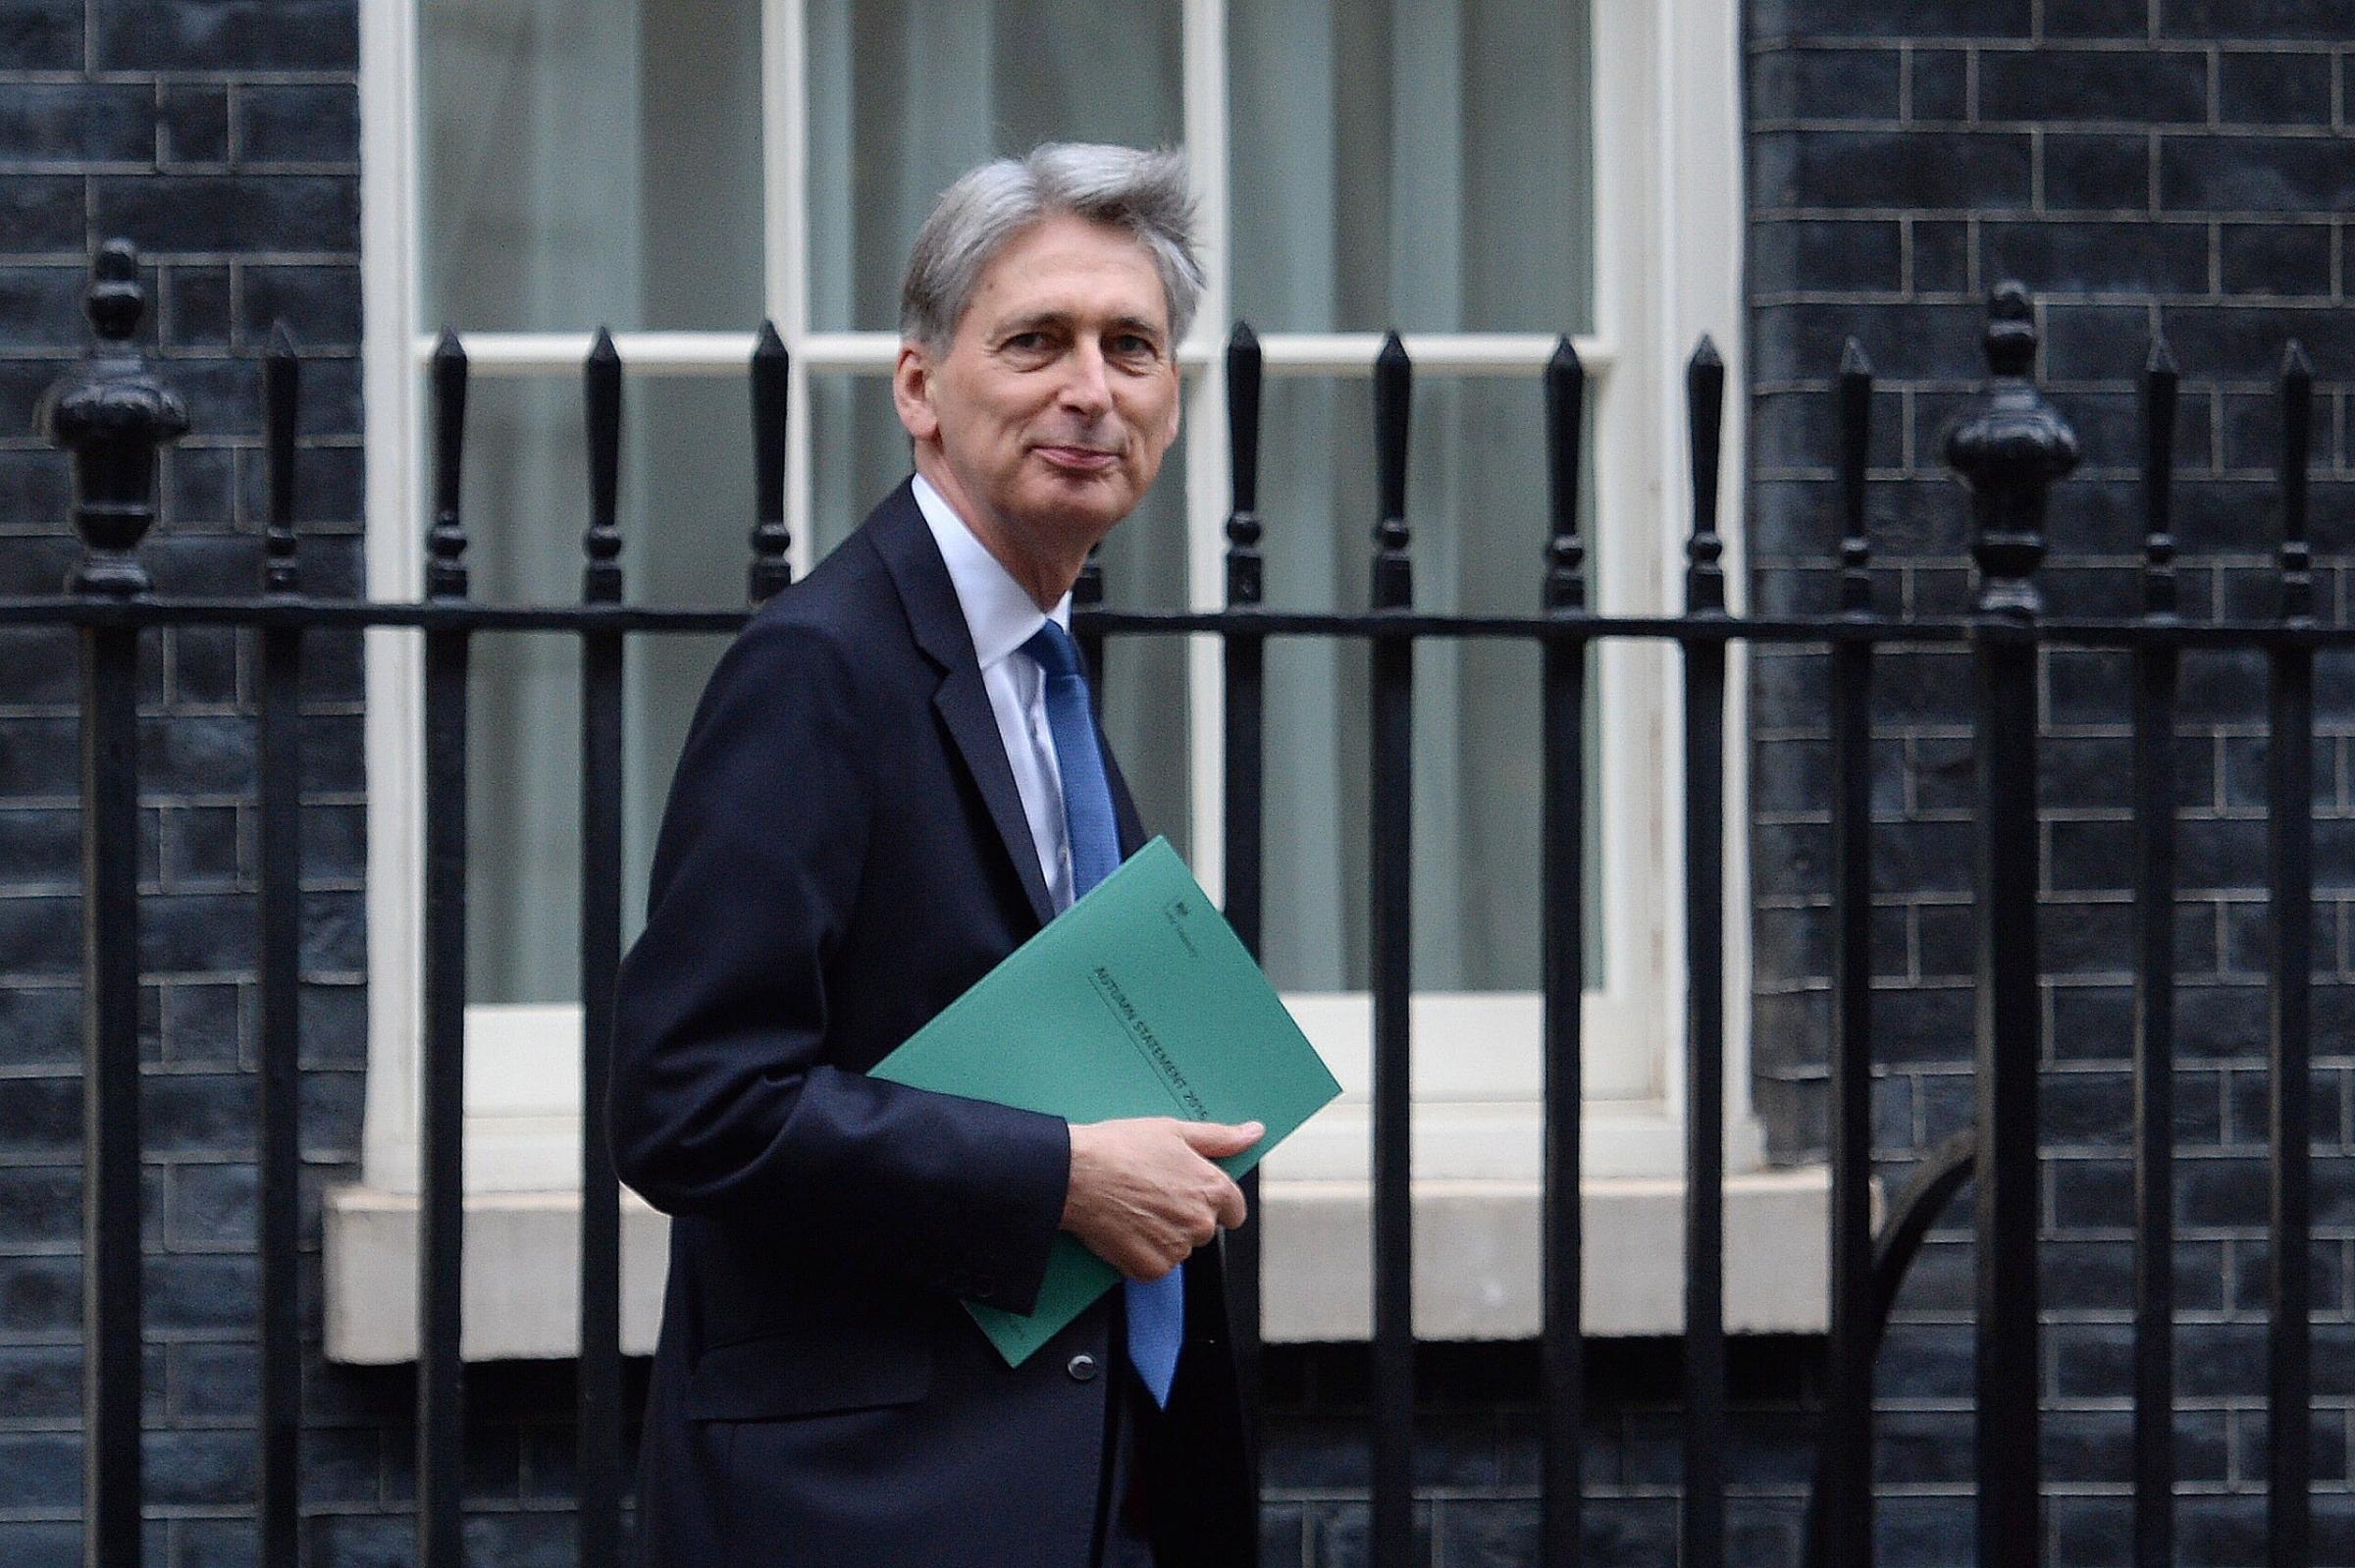 Chancellor Philip Hammond has categorically stated that Britain will be economically worse off after leaving the EU